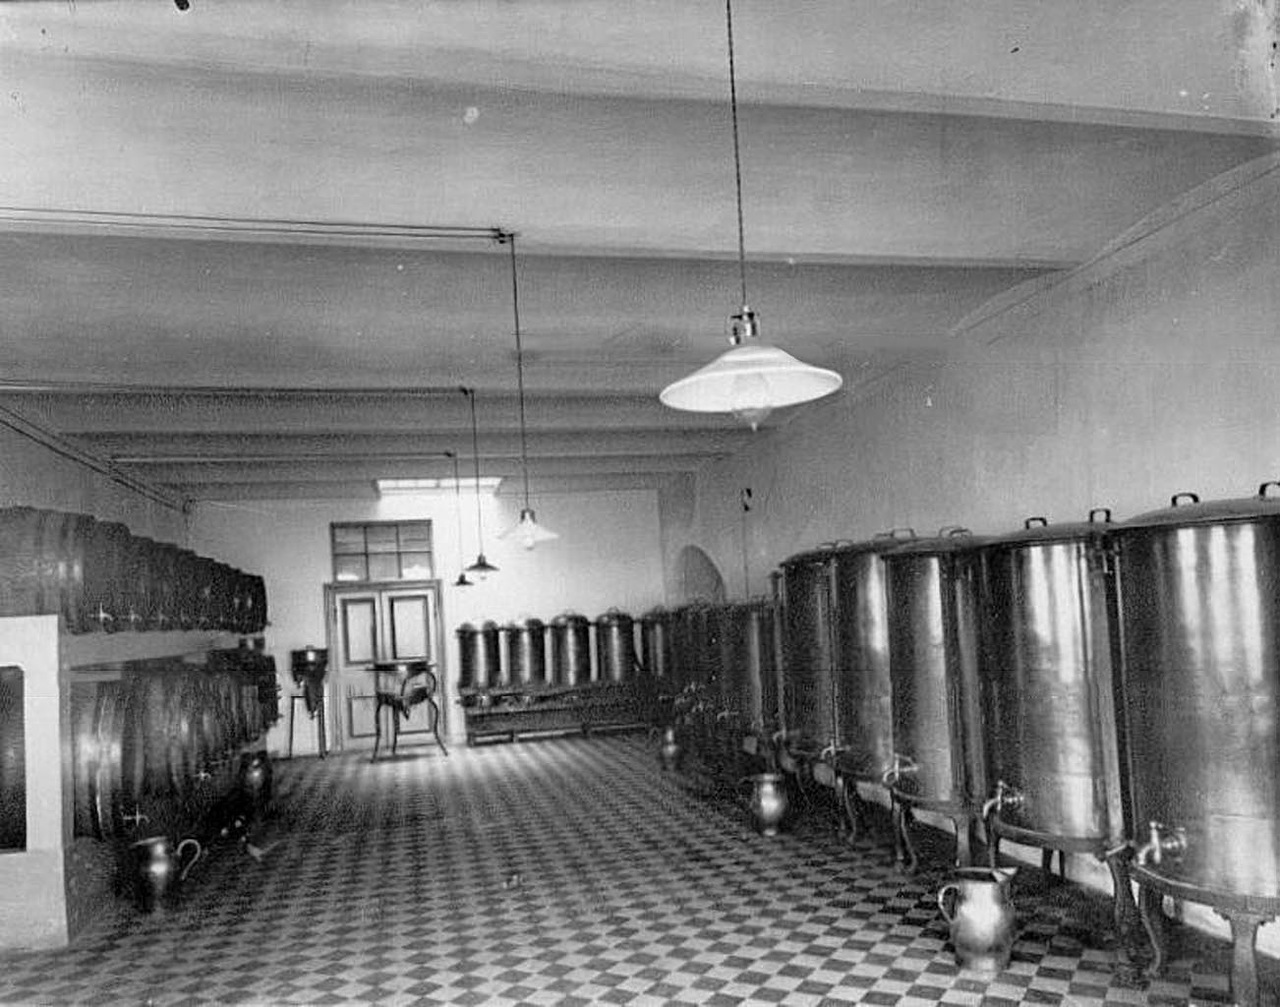 In 1911 Keller and K° was awarded the Gran-Prix at the universal exposition in Turin. After winning many competitions this was to be the company's last major prize. Ironically this award preceded prohibition laws introduced in Russia at the beginning of World War I. // A wine cellar.